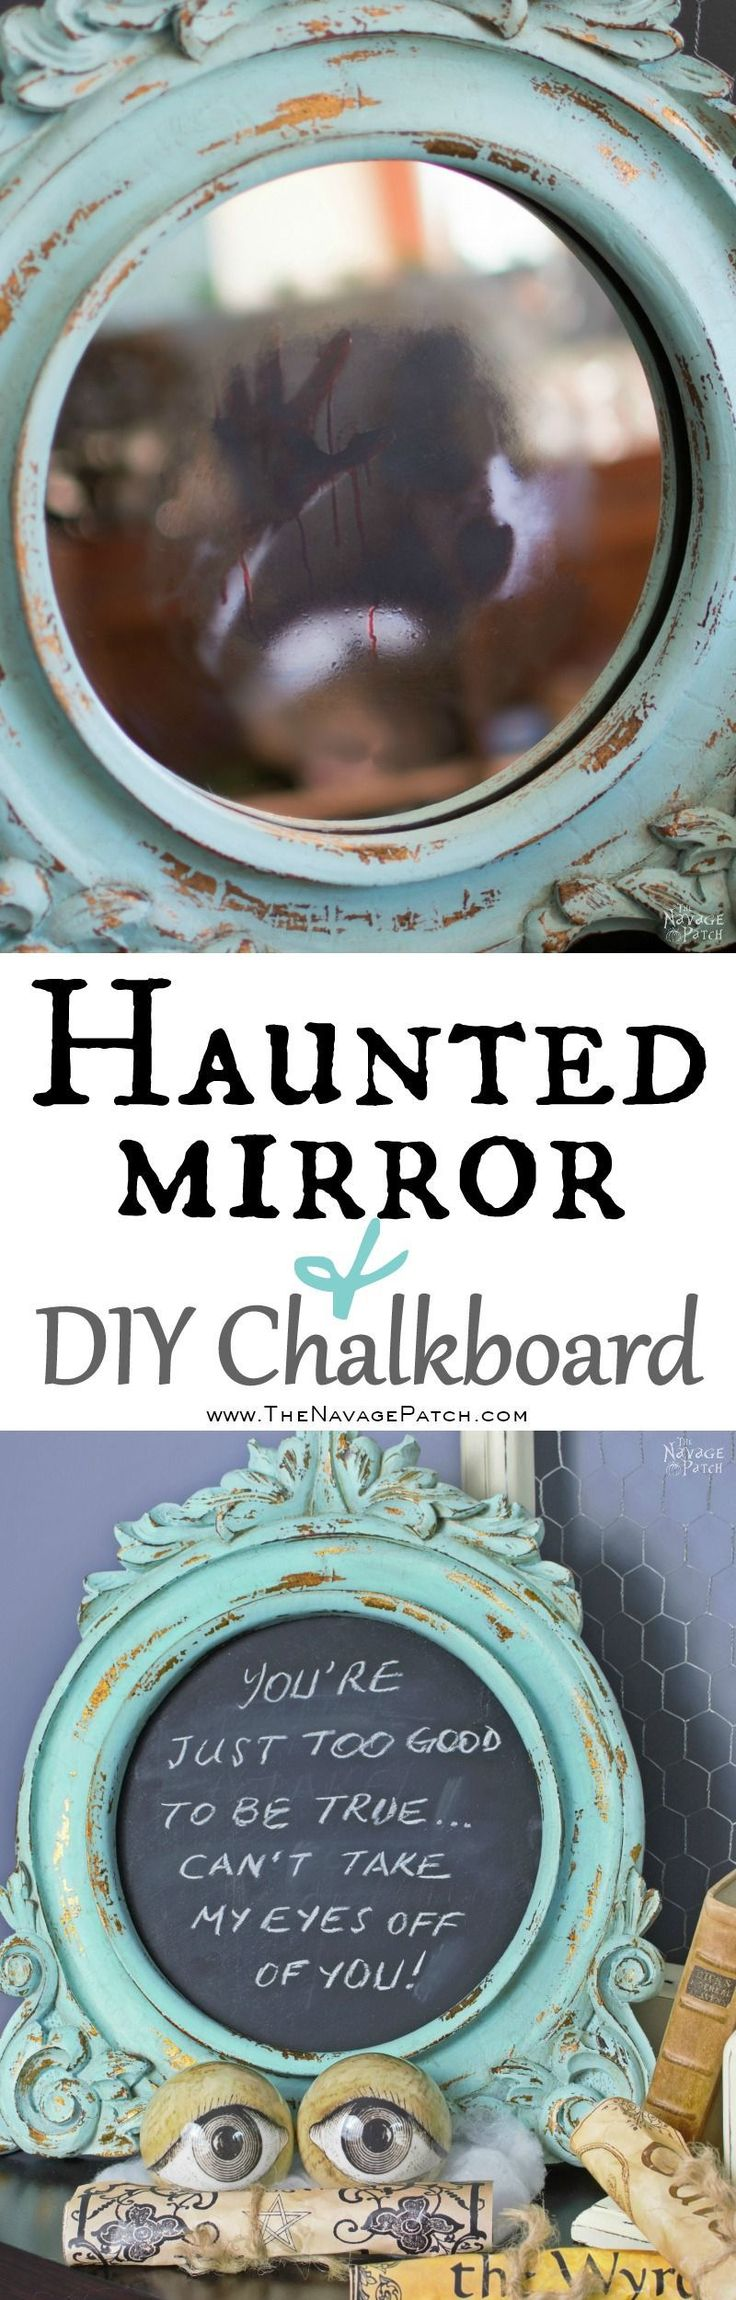 Halloween Haunted Mirror and DIY Chalkboard | DIY Halloween decor | How to make a make a haunted mirror | Homemade chalk paint recipe | Homemade chalk paint recipe | Picture frame makeover using diy chalk paint | Transformed and upcycled picture frame | Free paint color code | Before & After | Easy & budget crafts | DIY Halloween prop | Spooky and gothic decor | Upcycled Halloween decor | TheNavagePatch.com